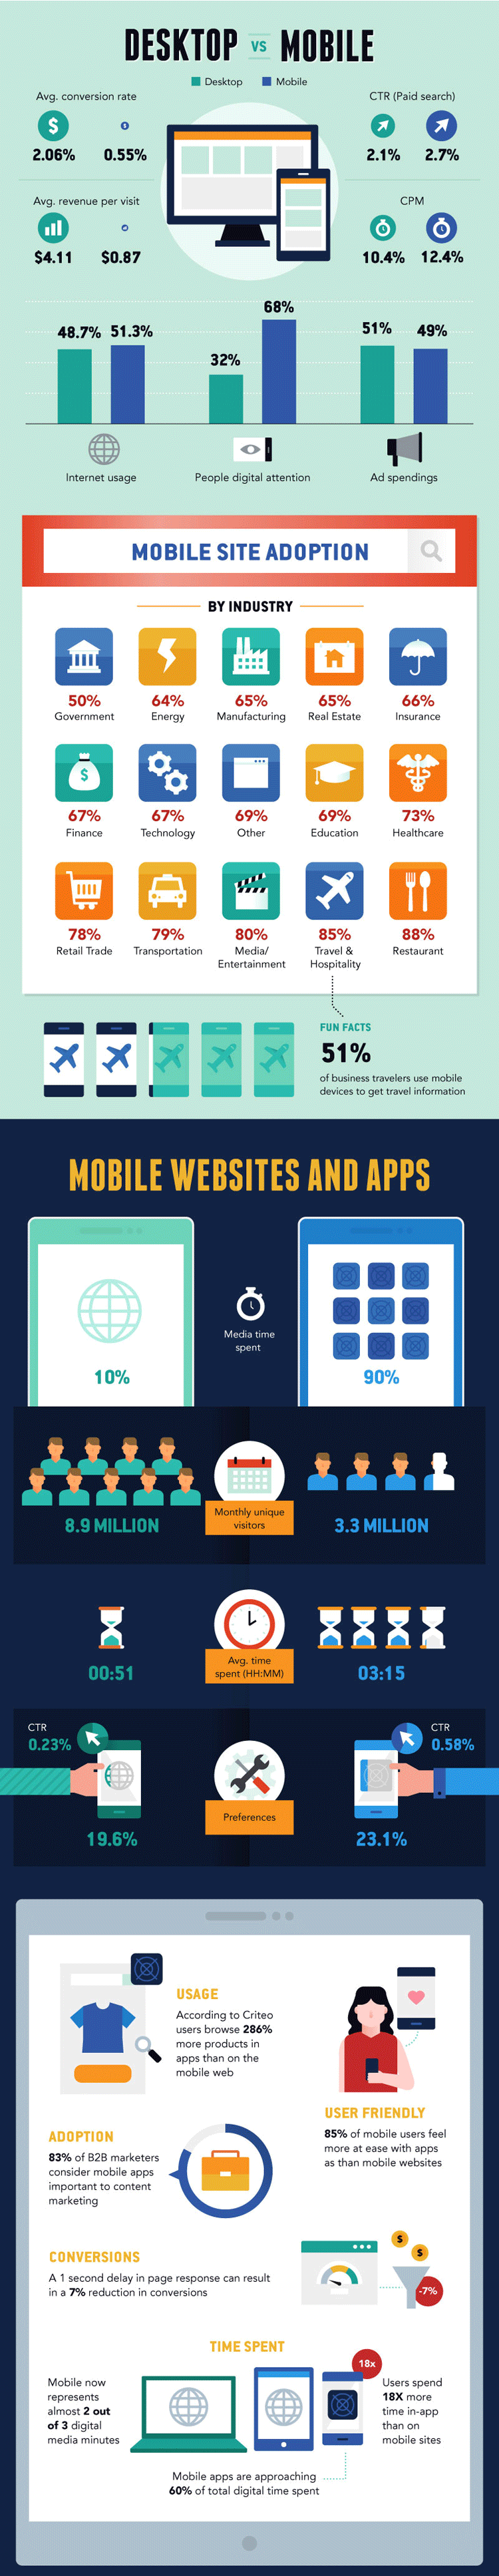 Desktop versus mobiles Marketing